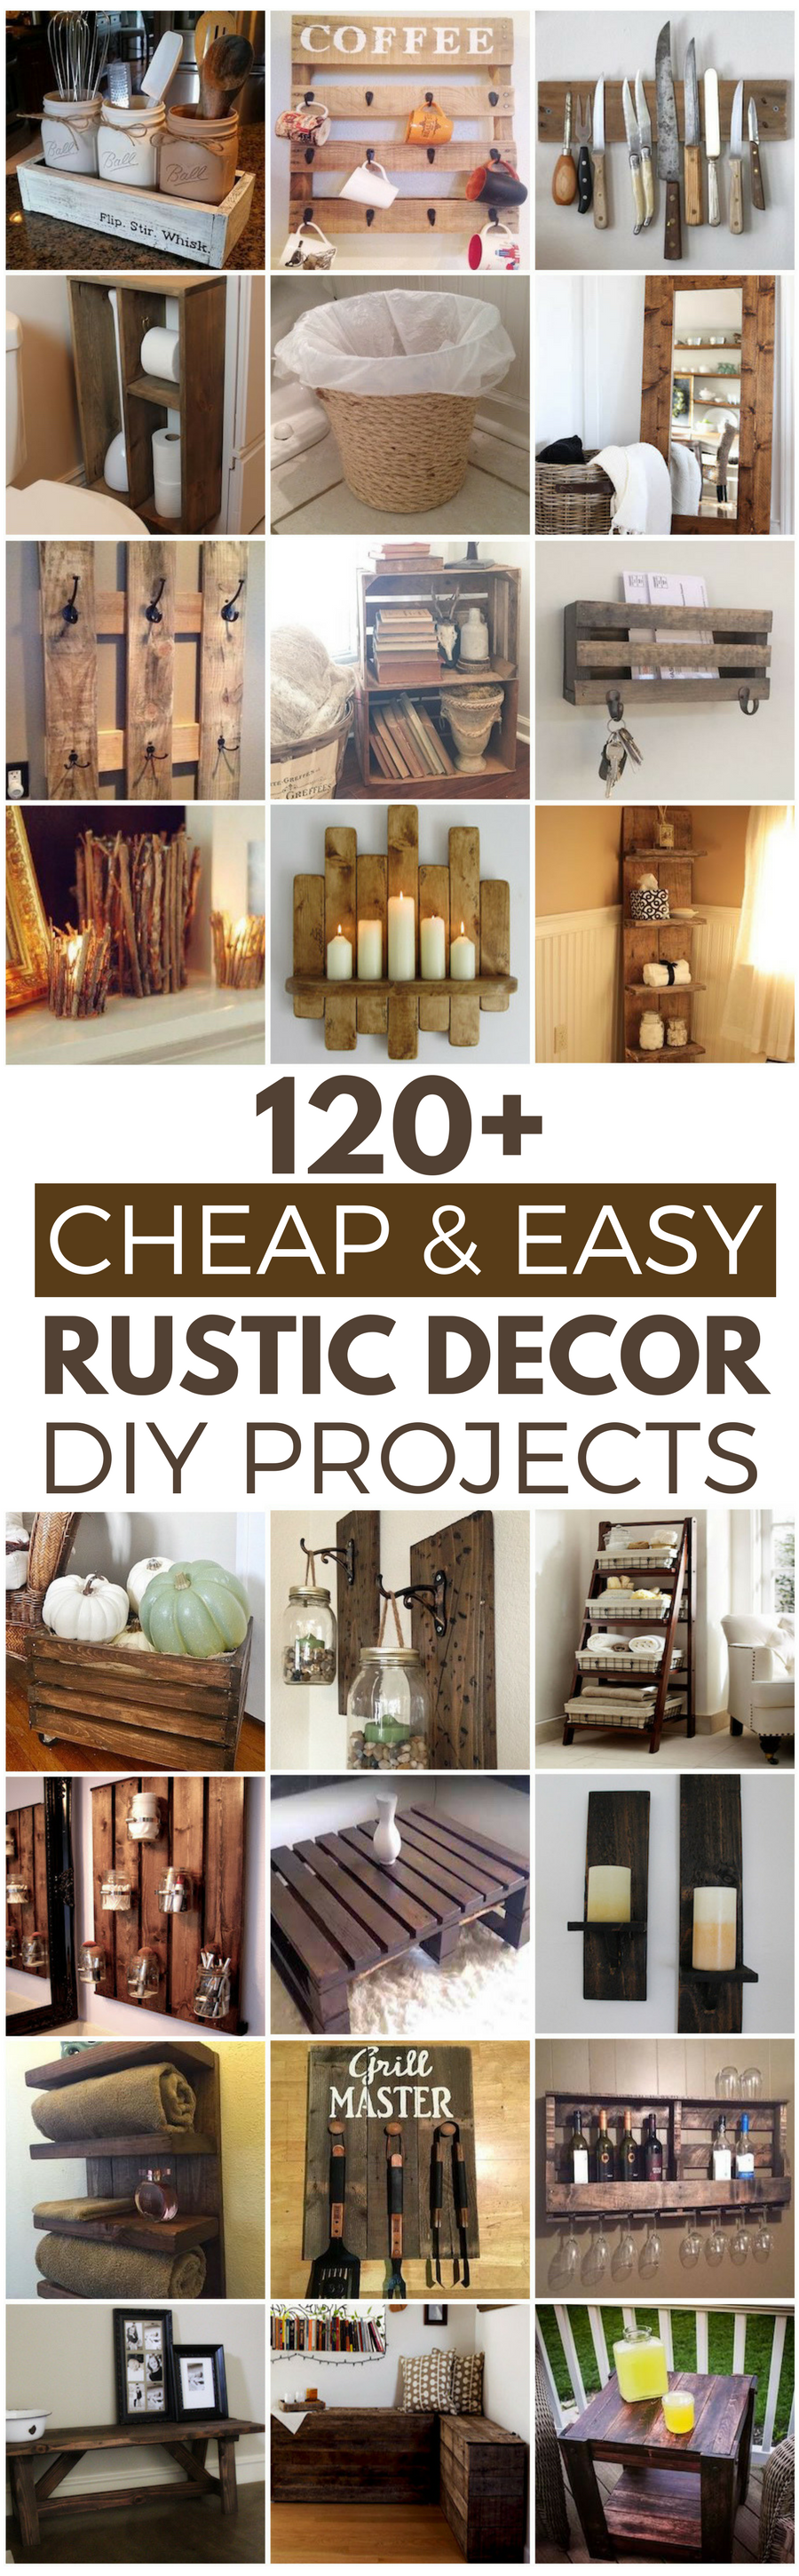 120 cheap and easy diy rustic home decor ideas prudent penny rh pinterest com